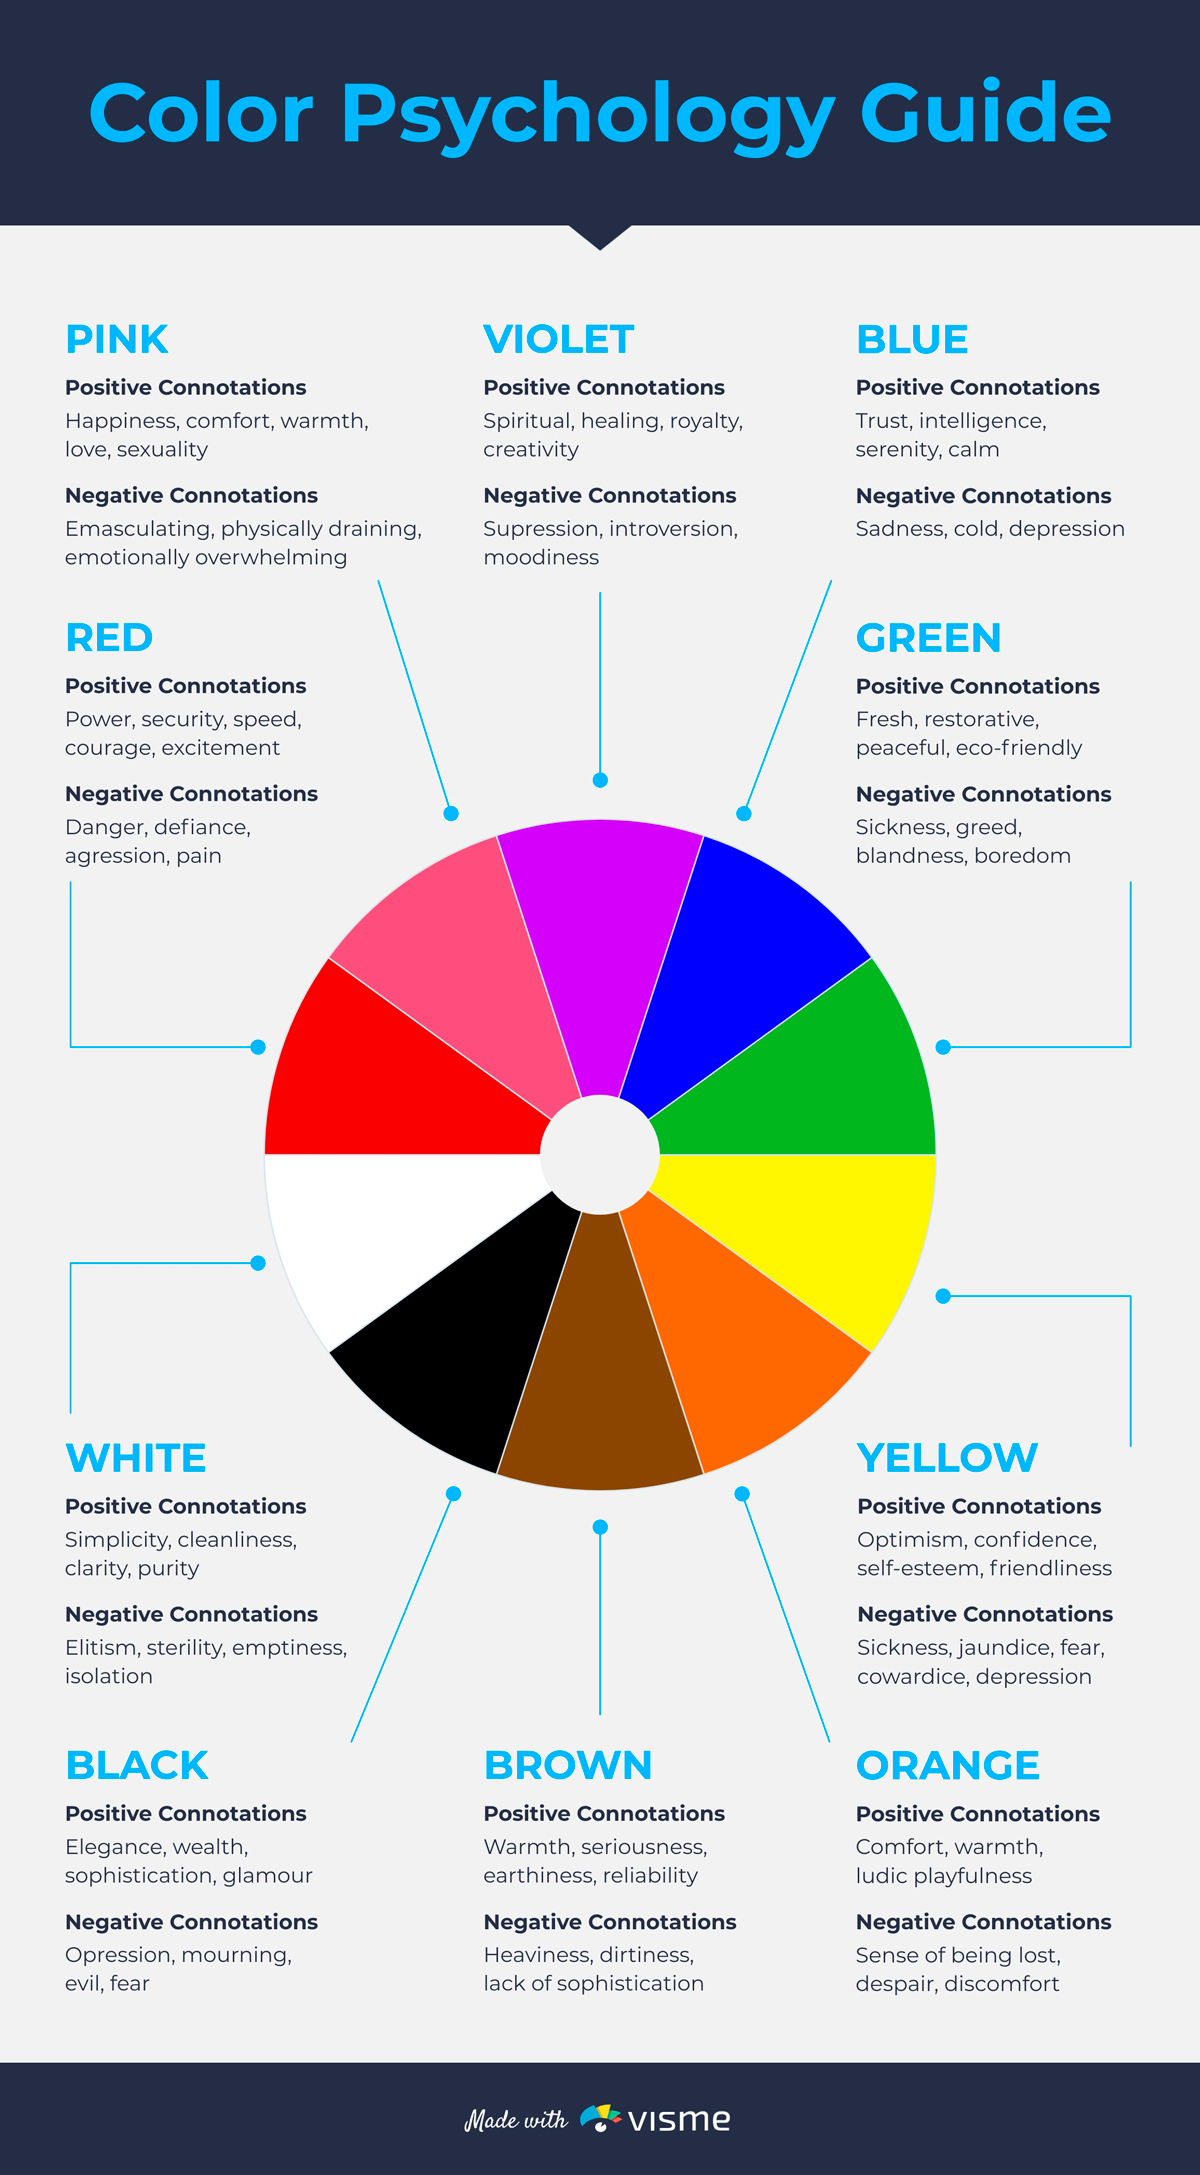 An infographic showcasing a color psychology guide.